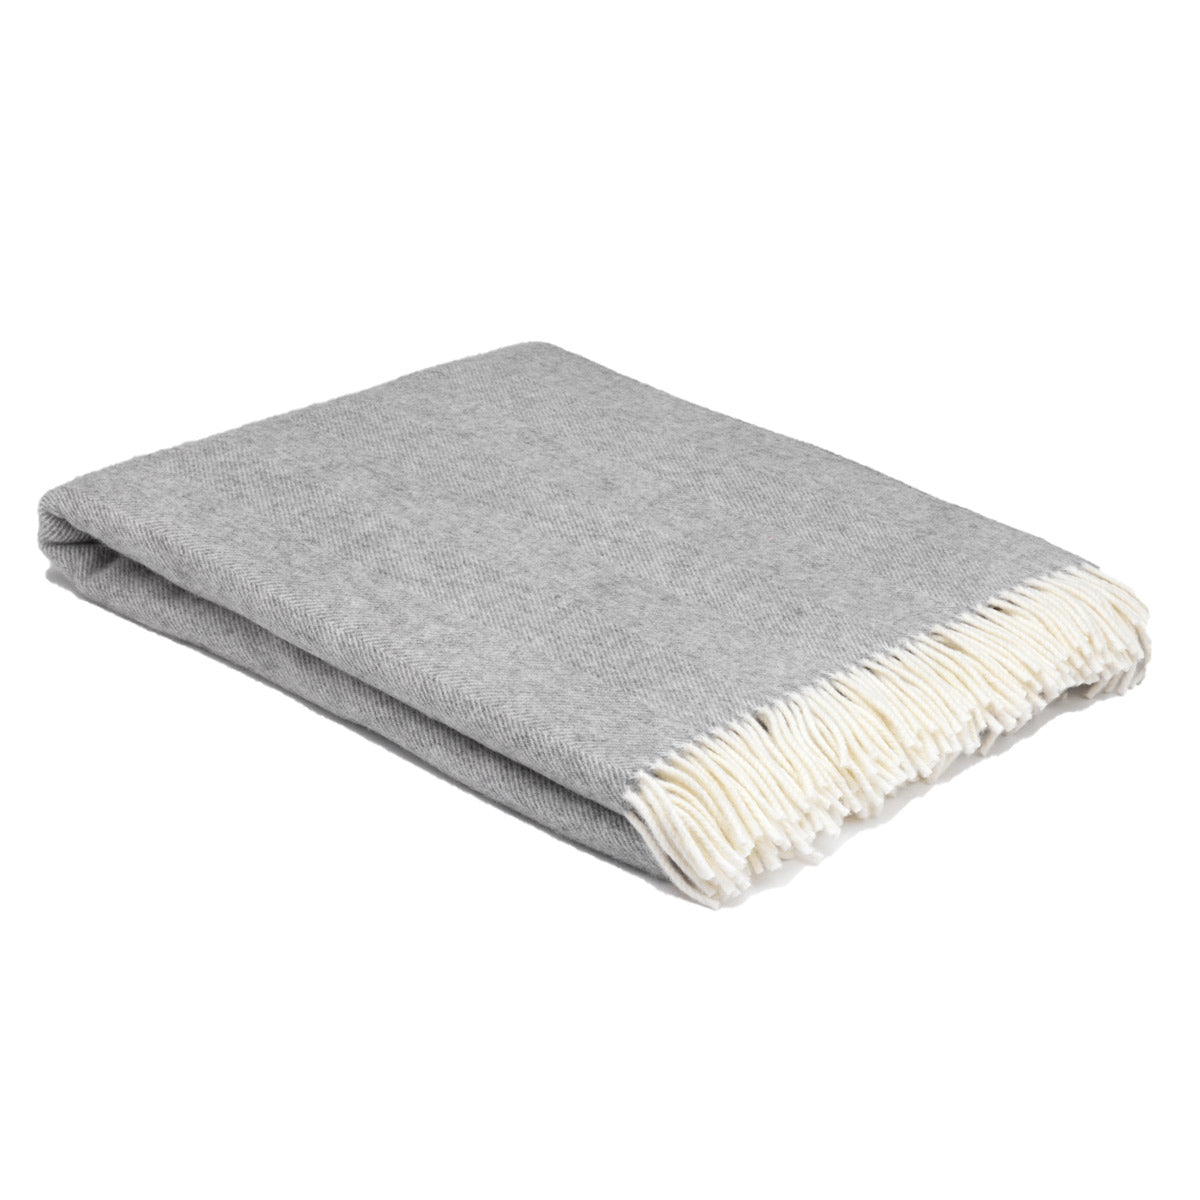 Lambswool Blanket Grey